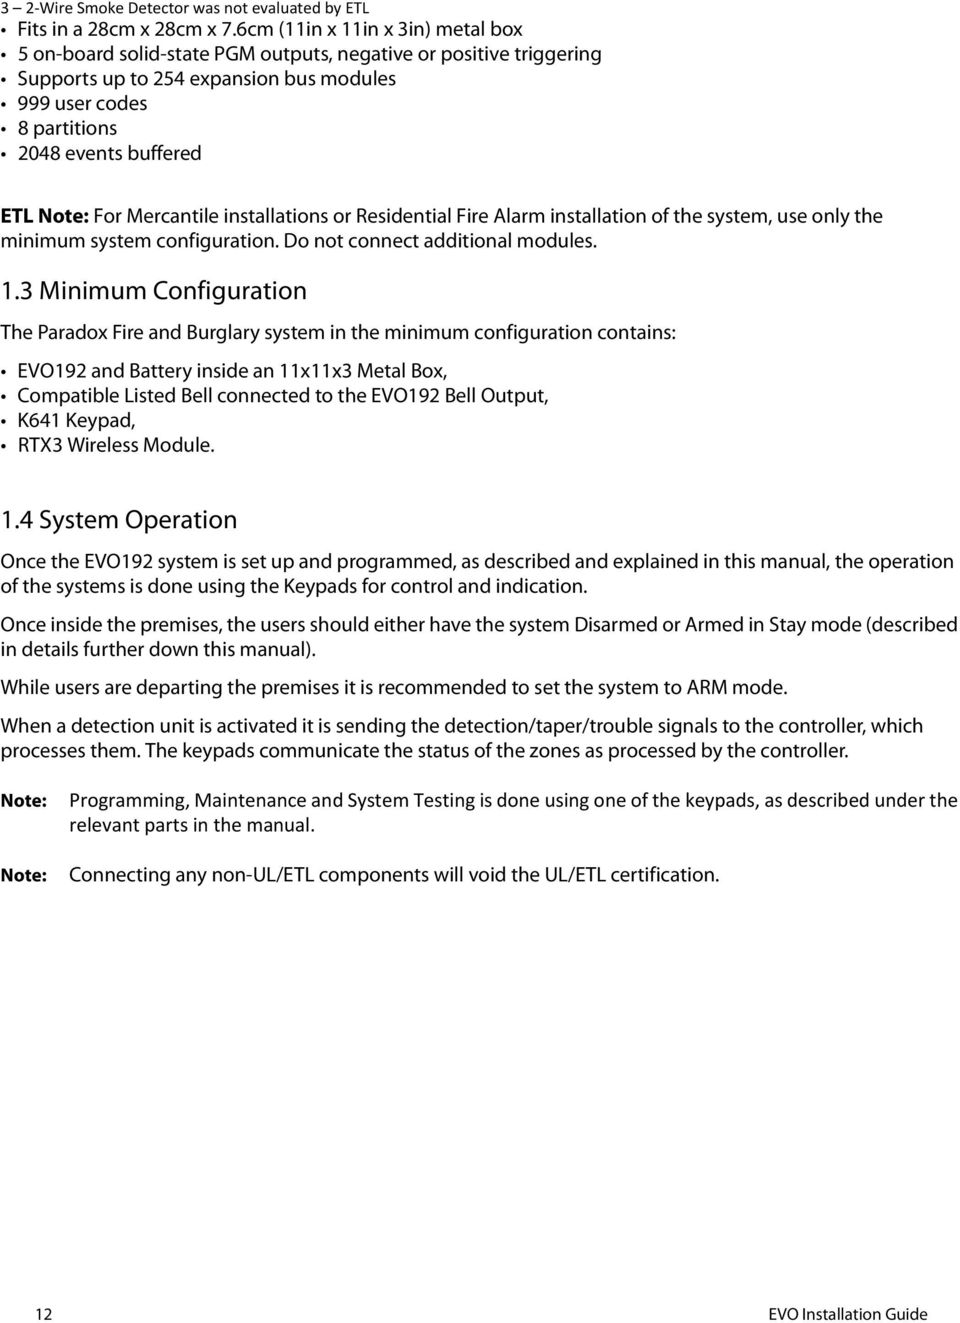 Fire and burglary alarm system evo192 installation guide pdf note for mercantile installations or residential fire alarm installation of the system use only 1betcityfo Gallery